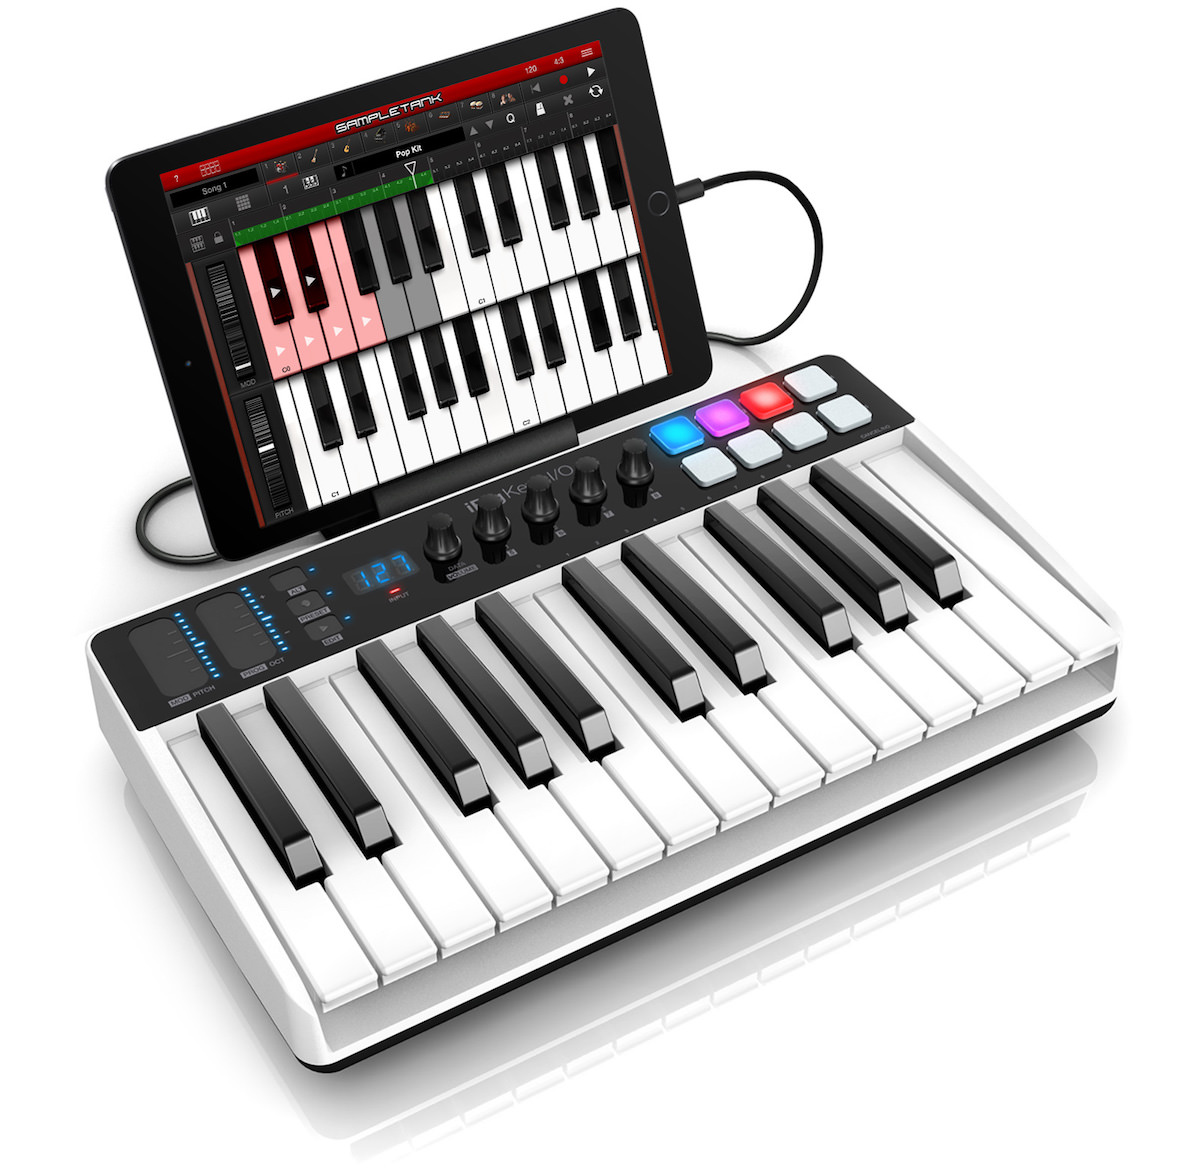 Review-IK-Multimedia-iRig-Keys-IO-06-iPad-Stand.jpg